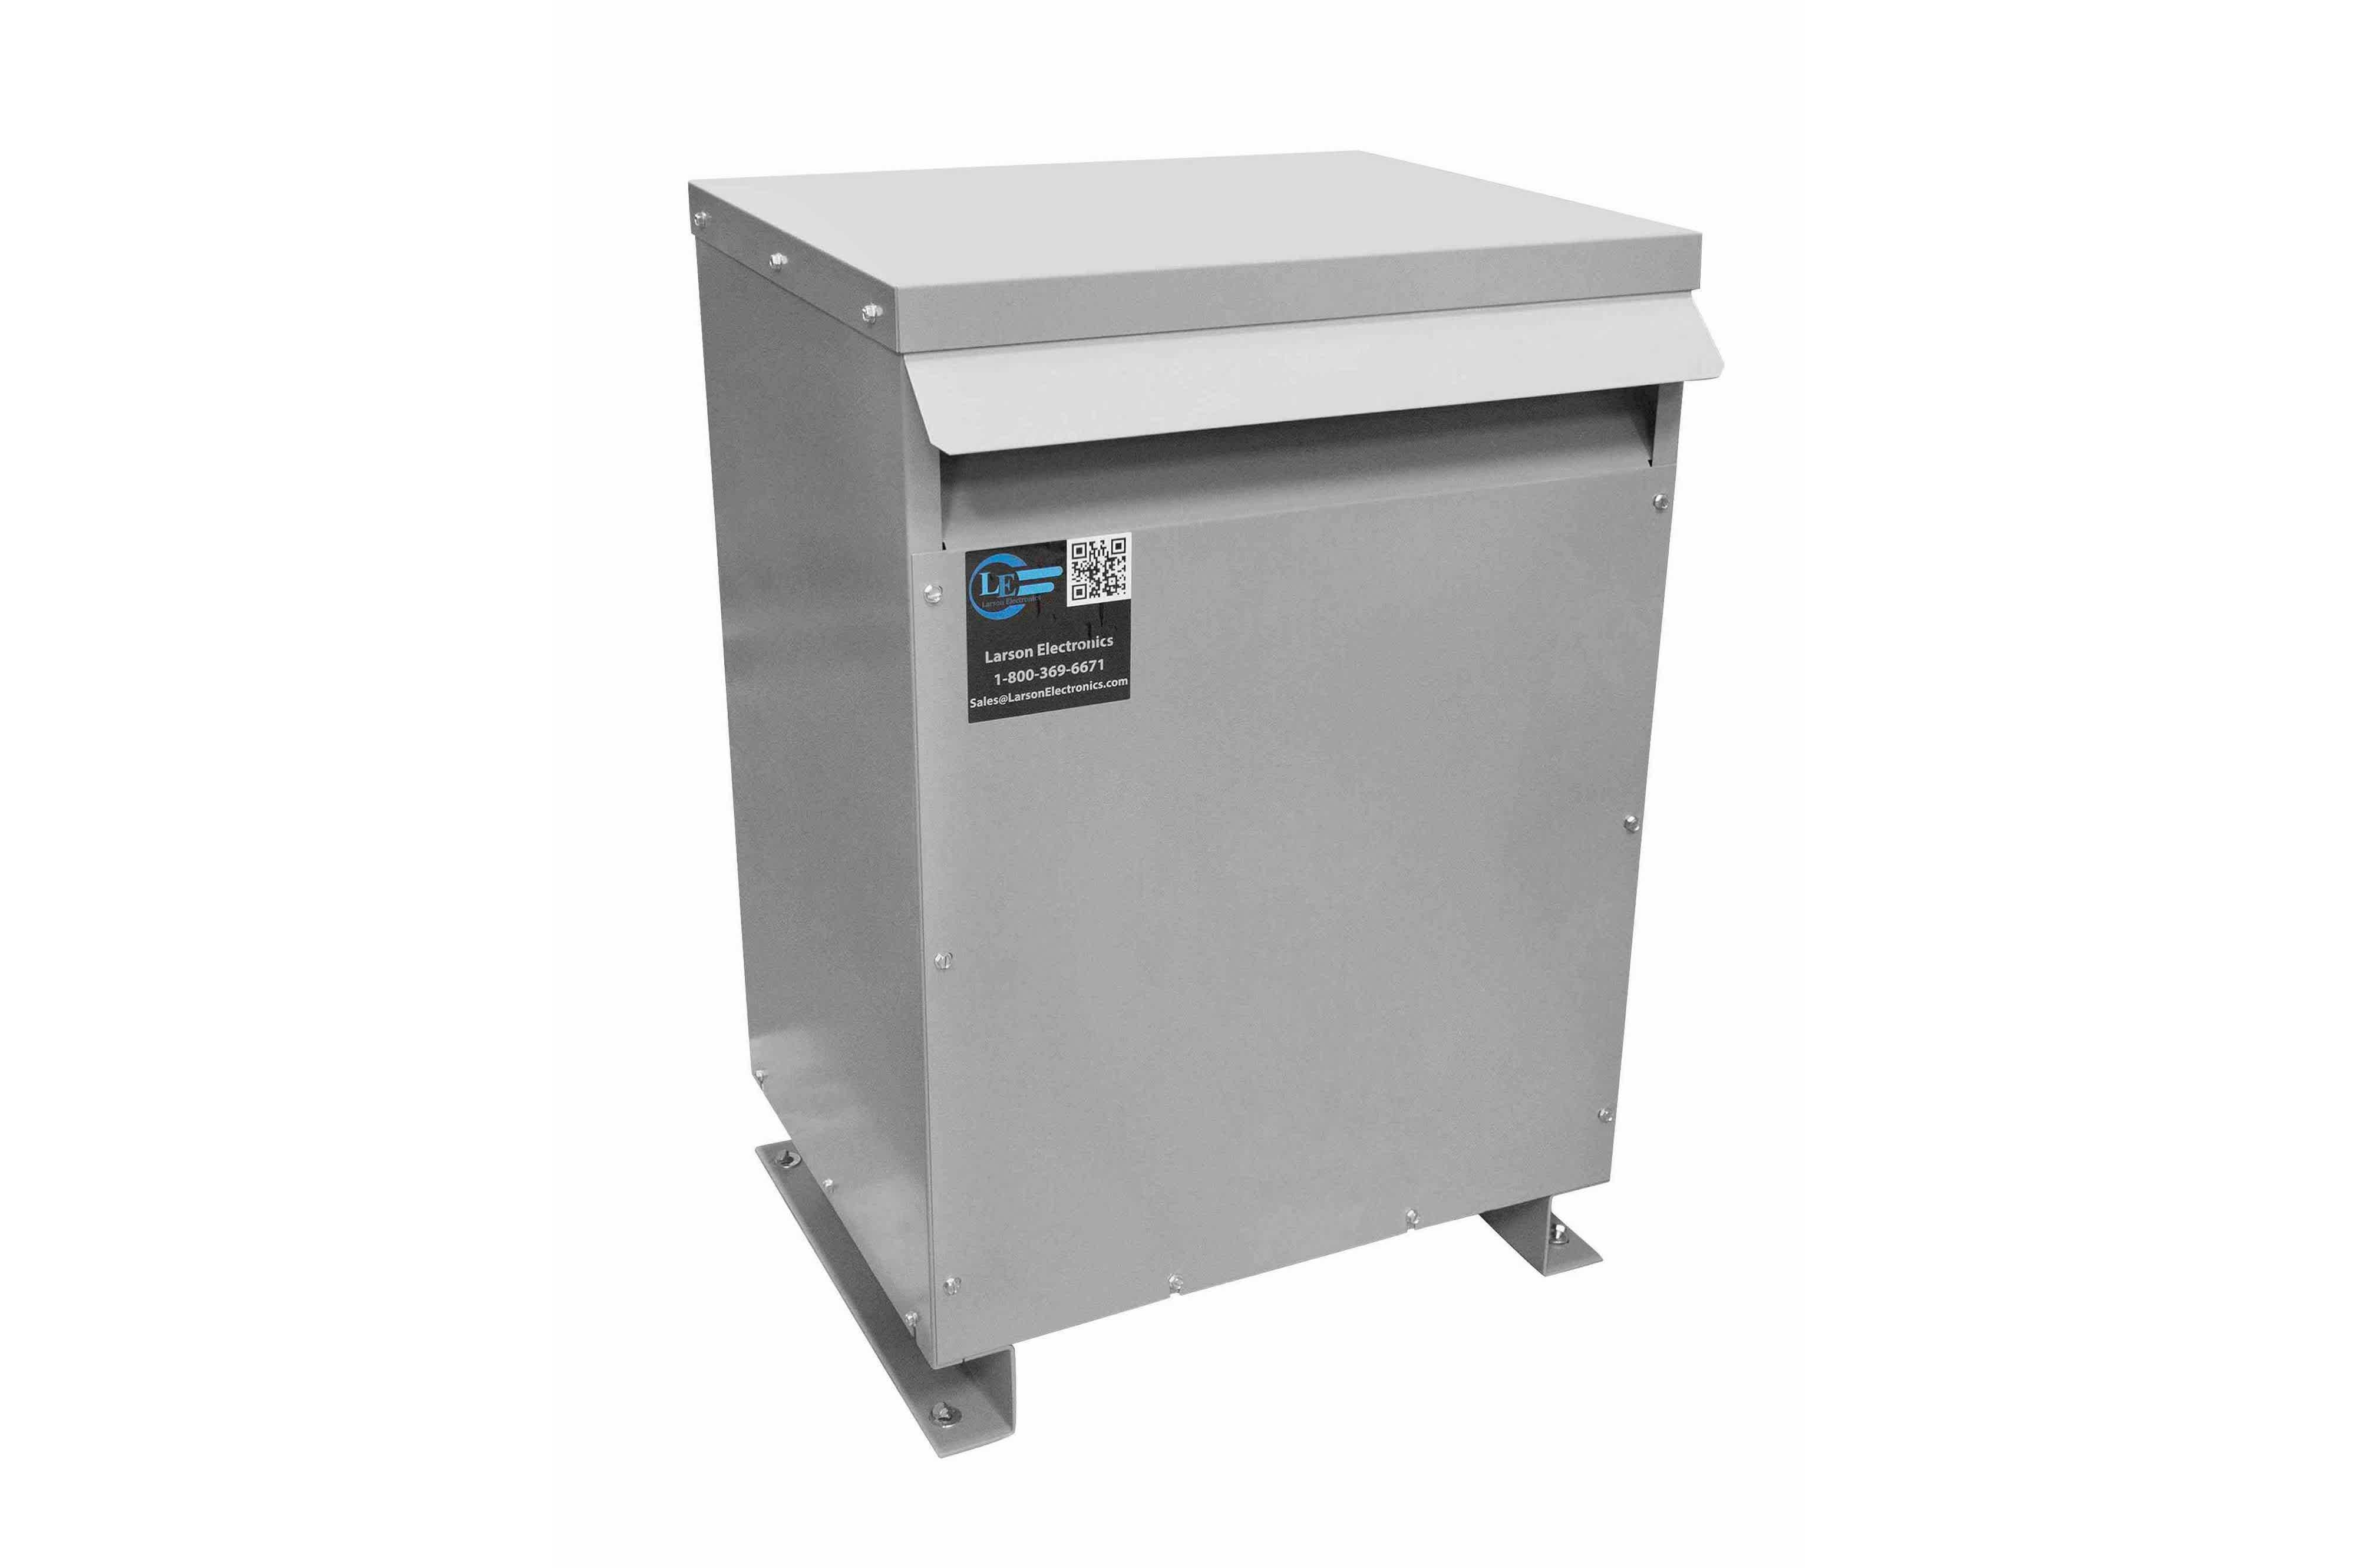 900 kVA 3PH Isolation Transformer, 230V Wye Primary, 480V Delta Secondary, N3R, Ventilated, 60 Hz